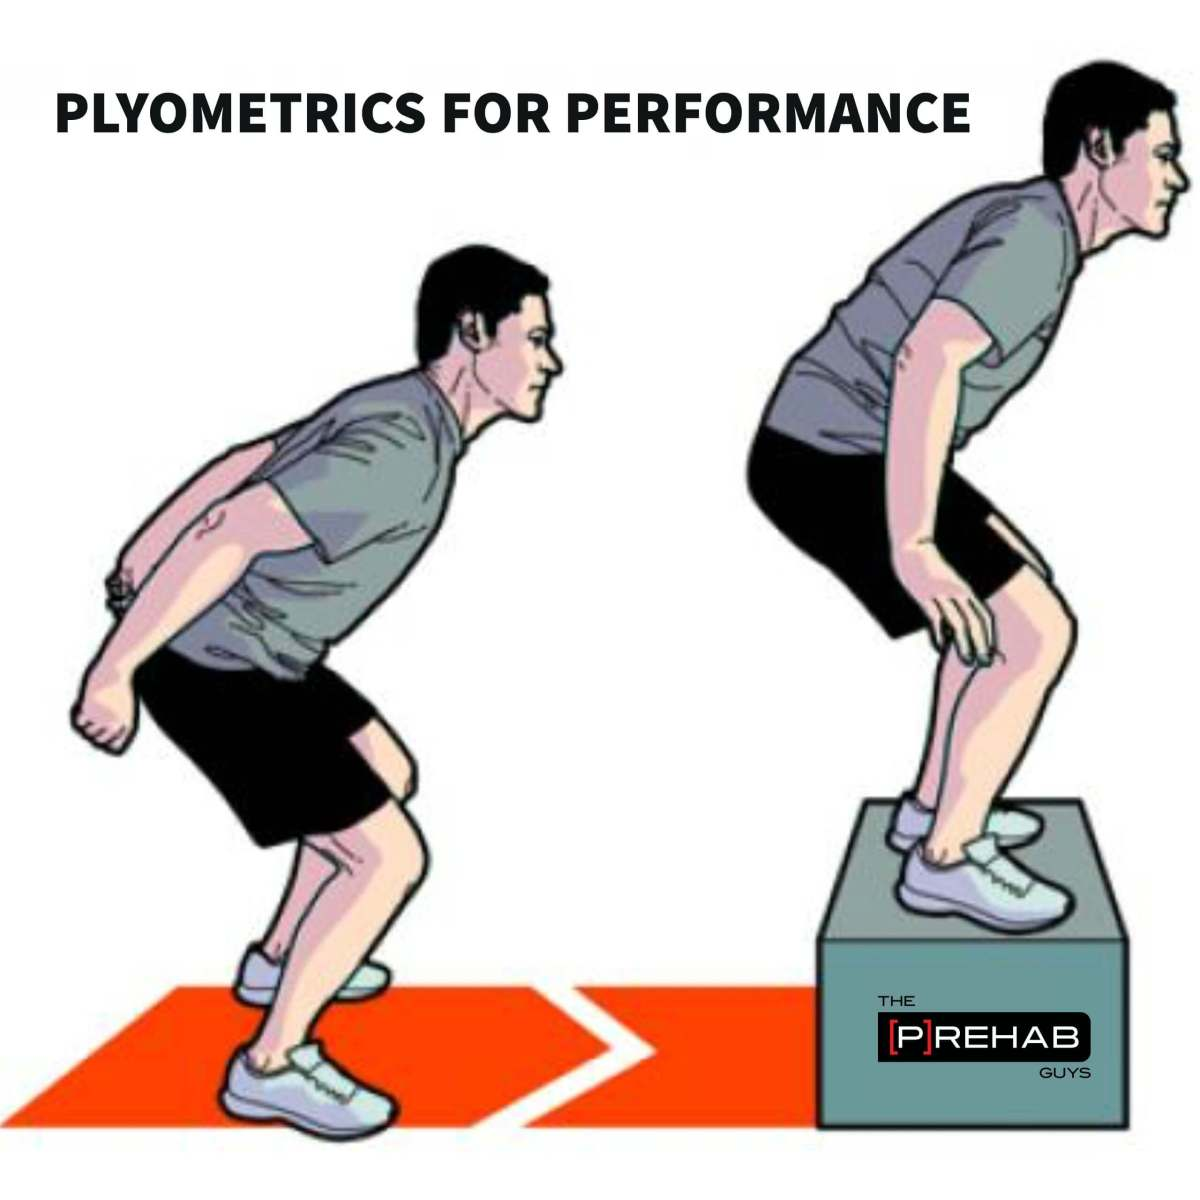 Jump Training - Box Jump Progressions For Evidenced Based Performance